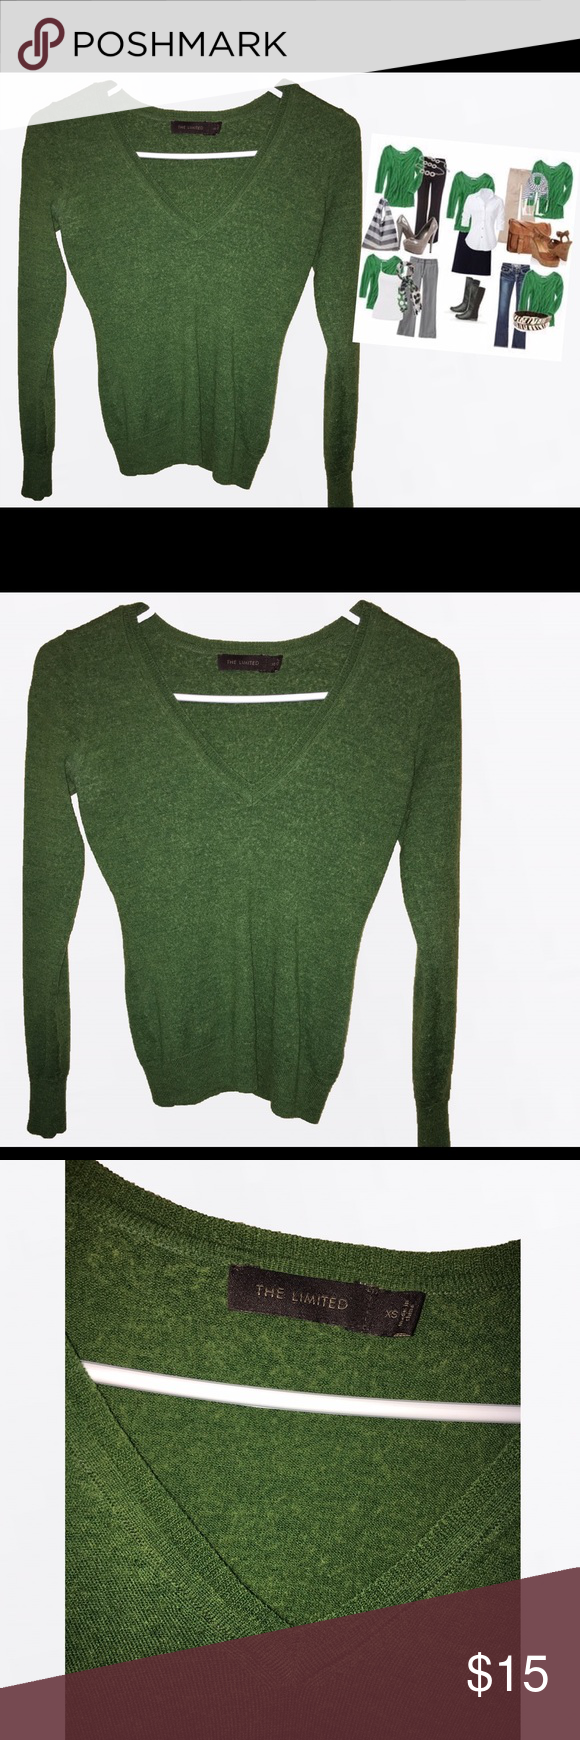 Green sweater- THE LIMITED Great condition.  Classic and vintage look The Limited Sweaters V-Necks